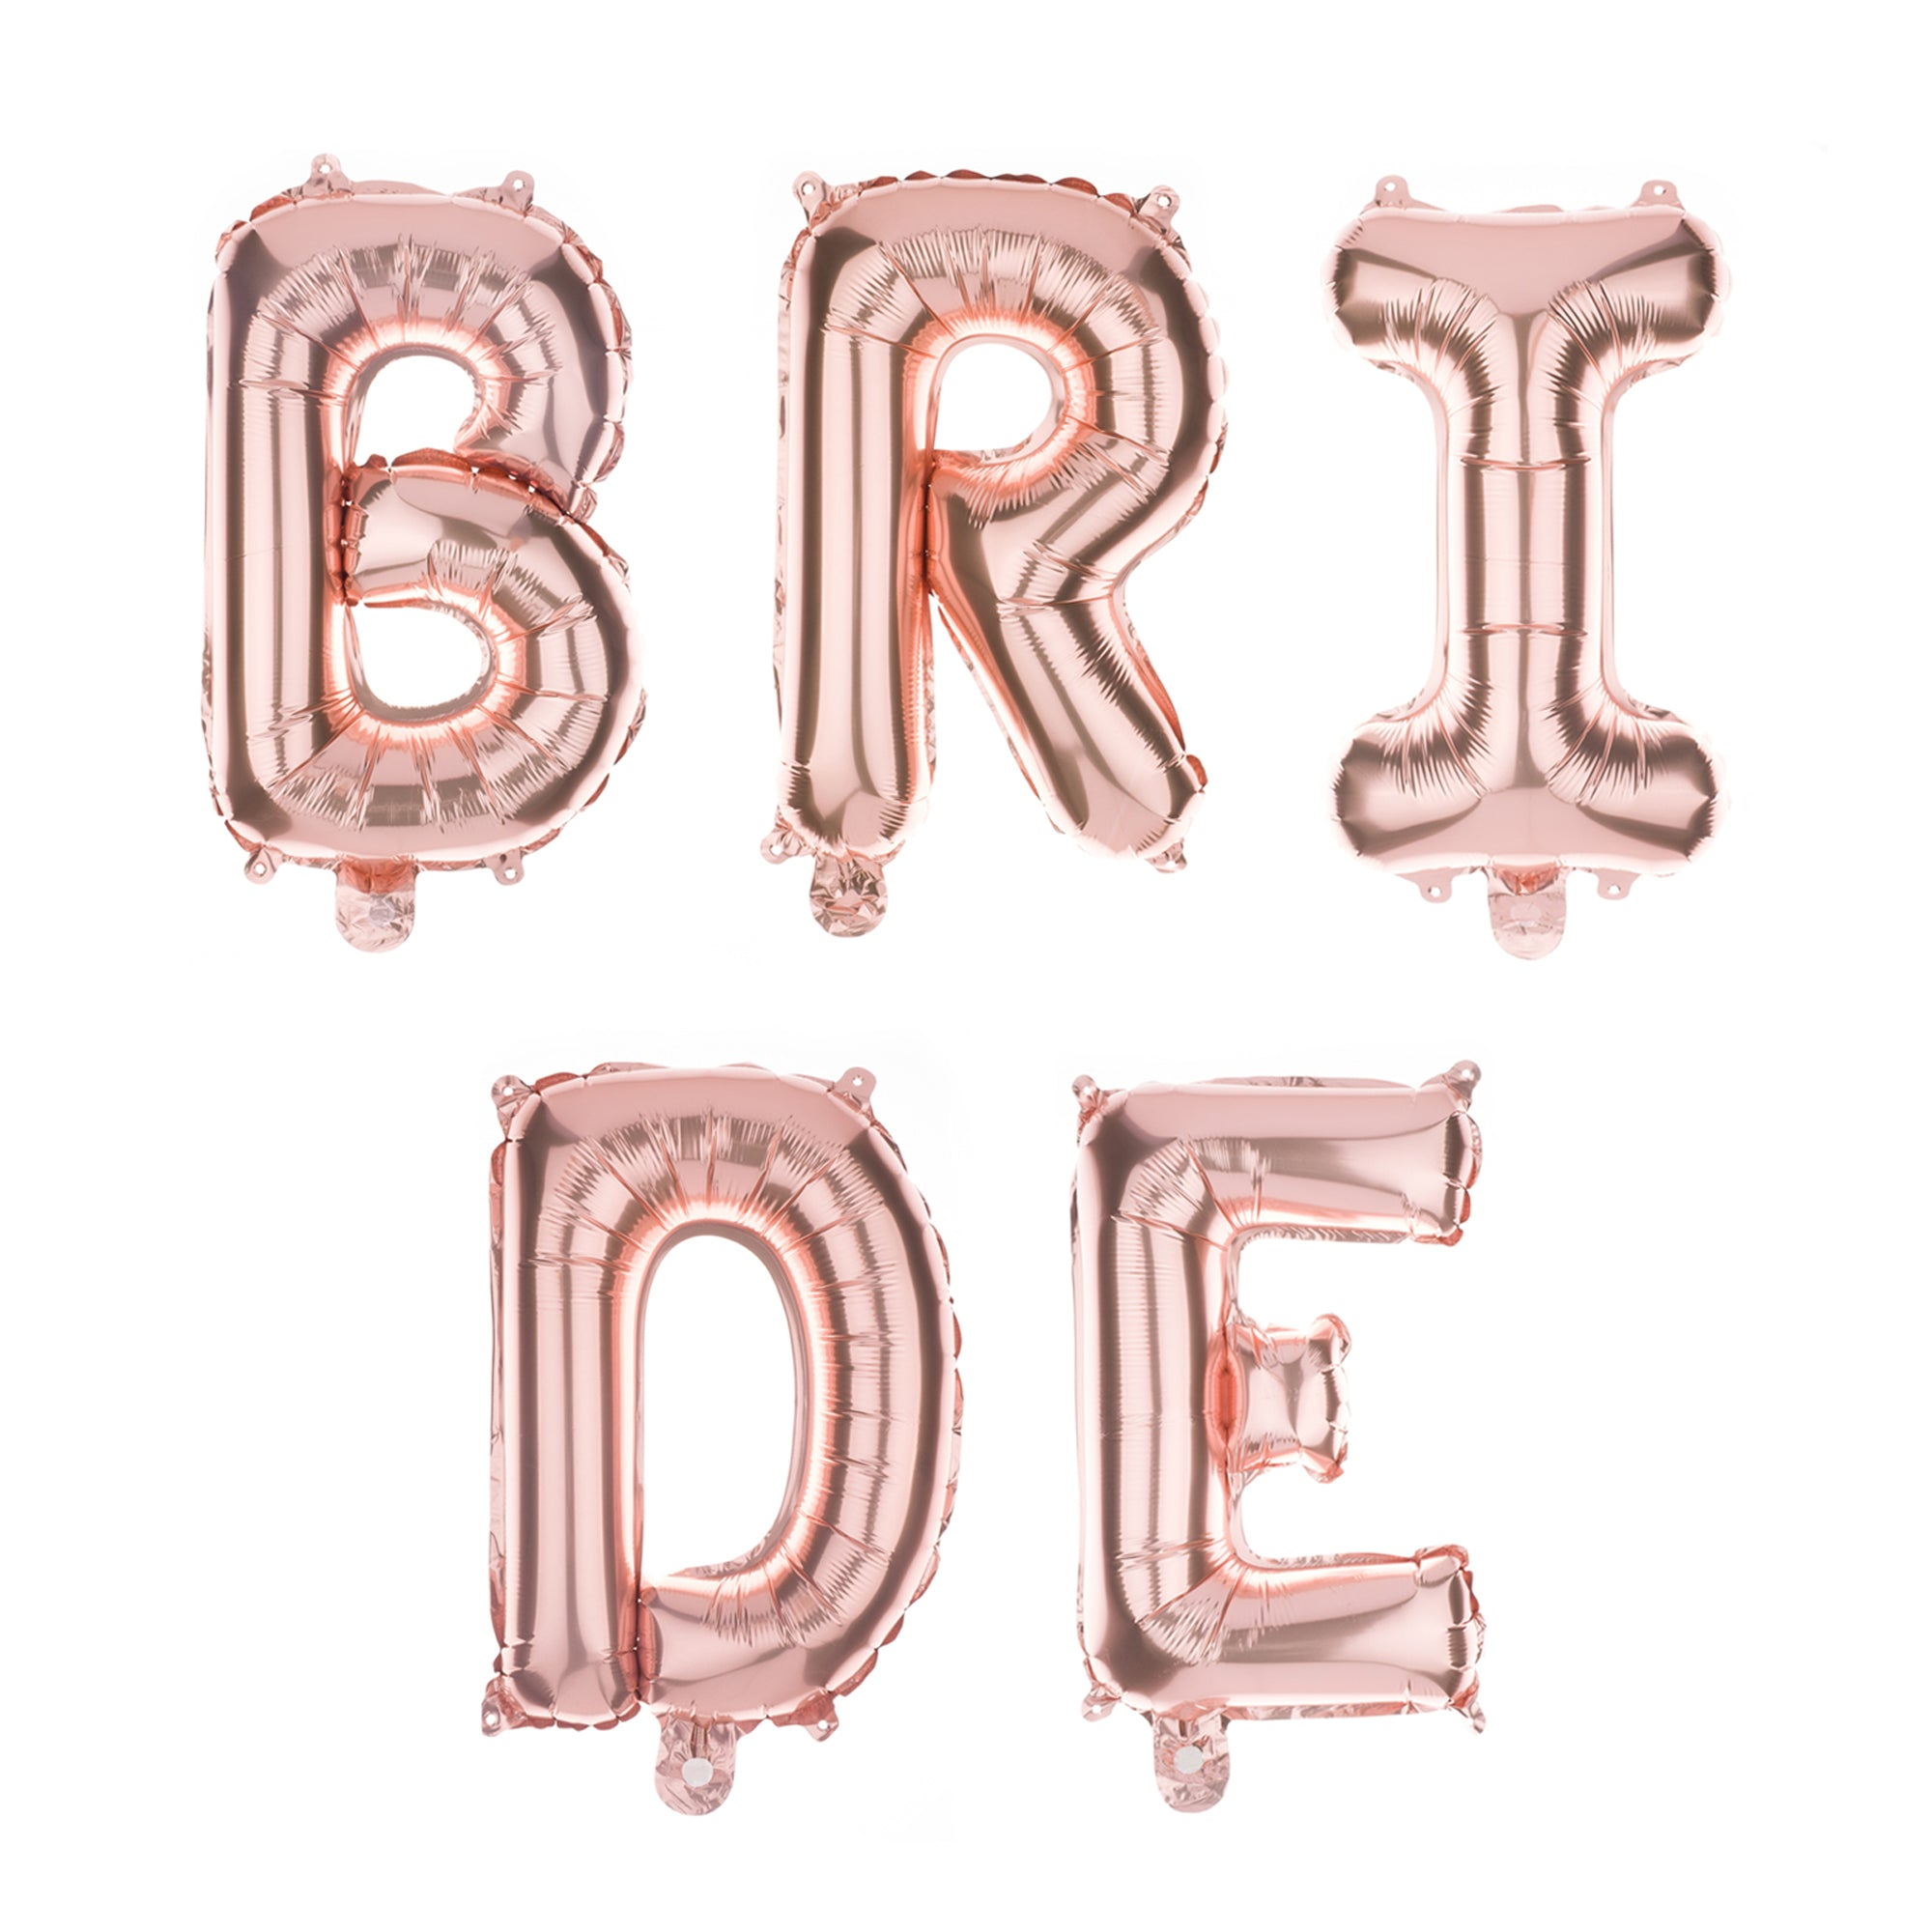 BRIDE Letter Balloons - 35 Inch Rose Gold